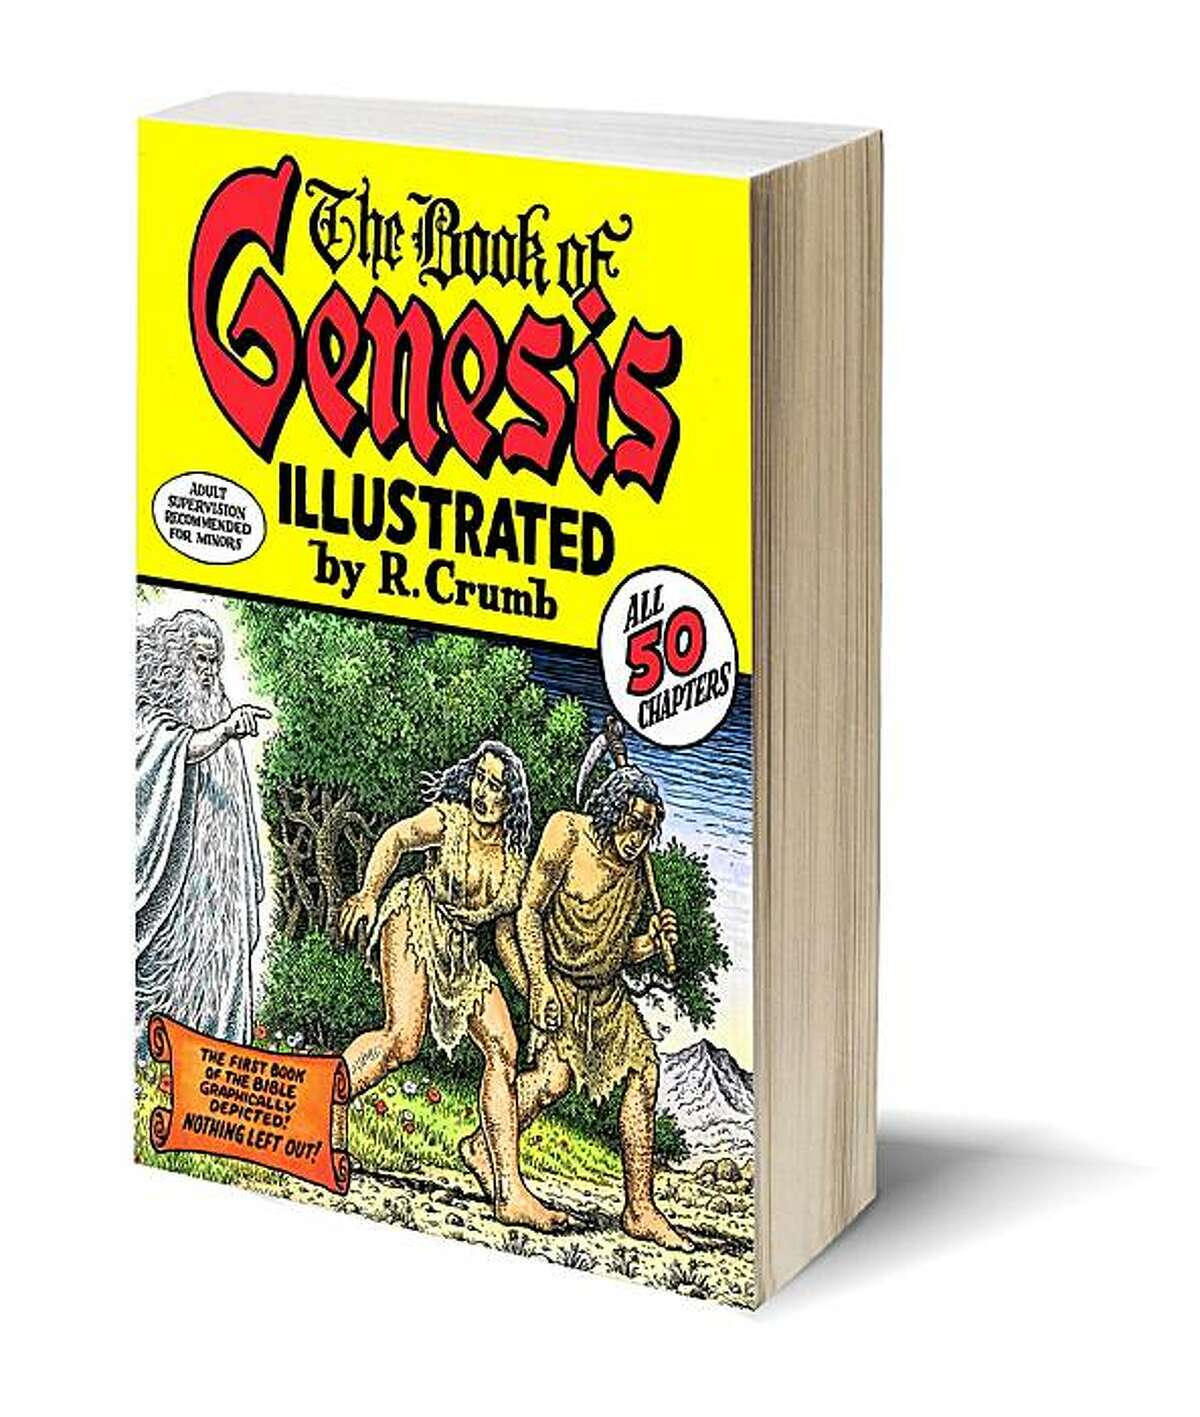 Book cover from R. Crumb's long-awaited The Book of Genesis, a word-for-word adaptation of the Bible Illustrated by R. Crumb. Blank bookcover with clipping path